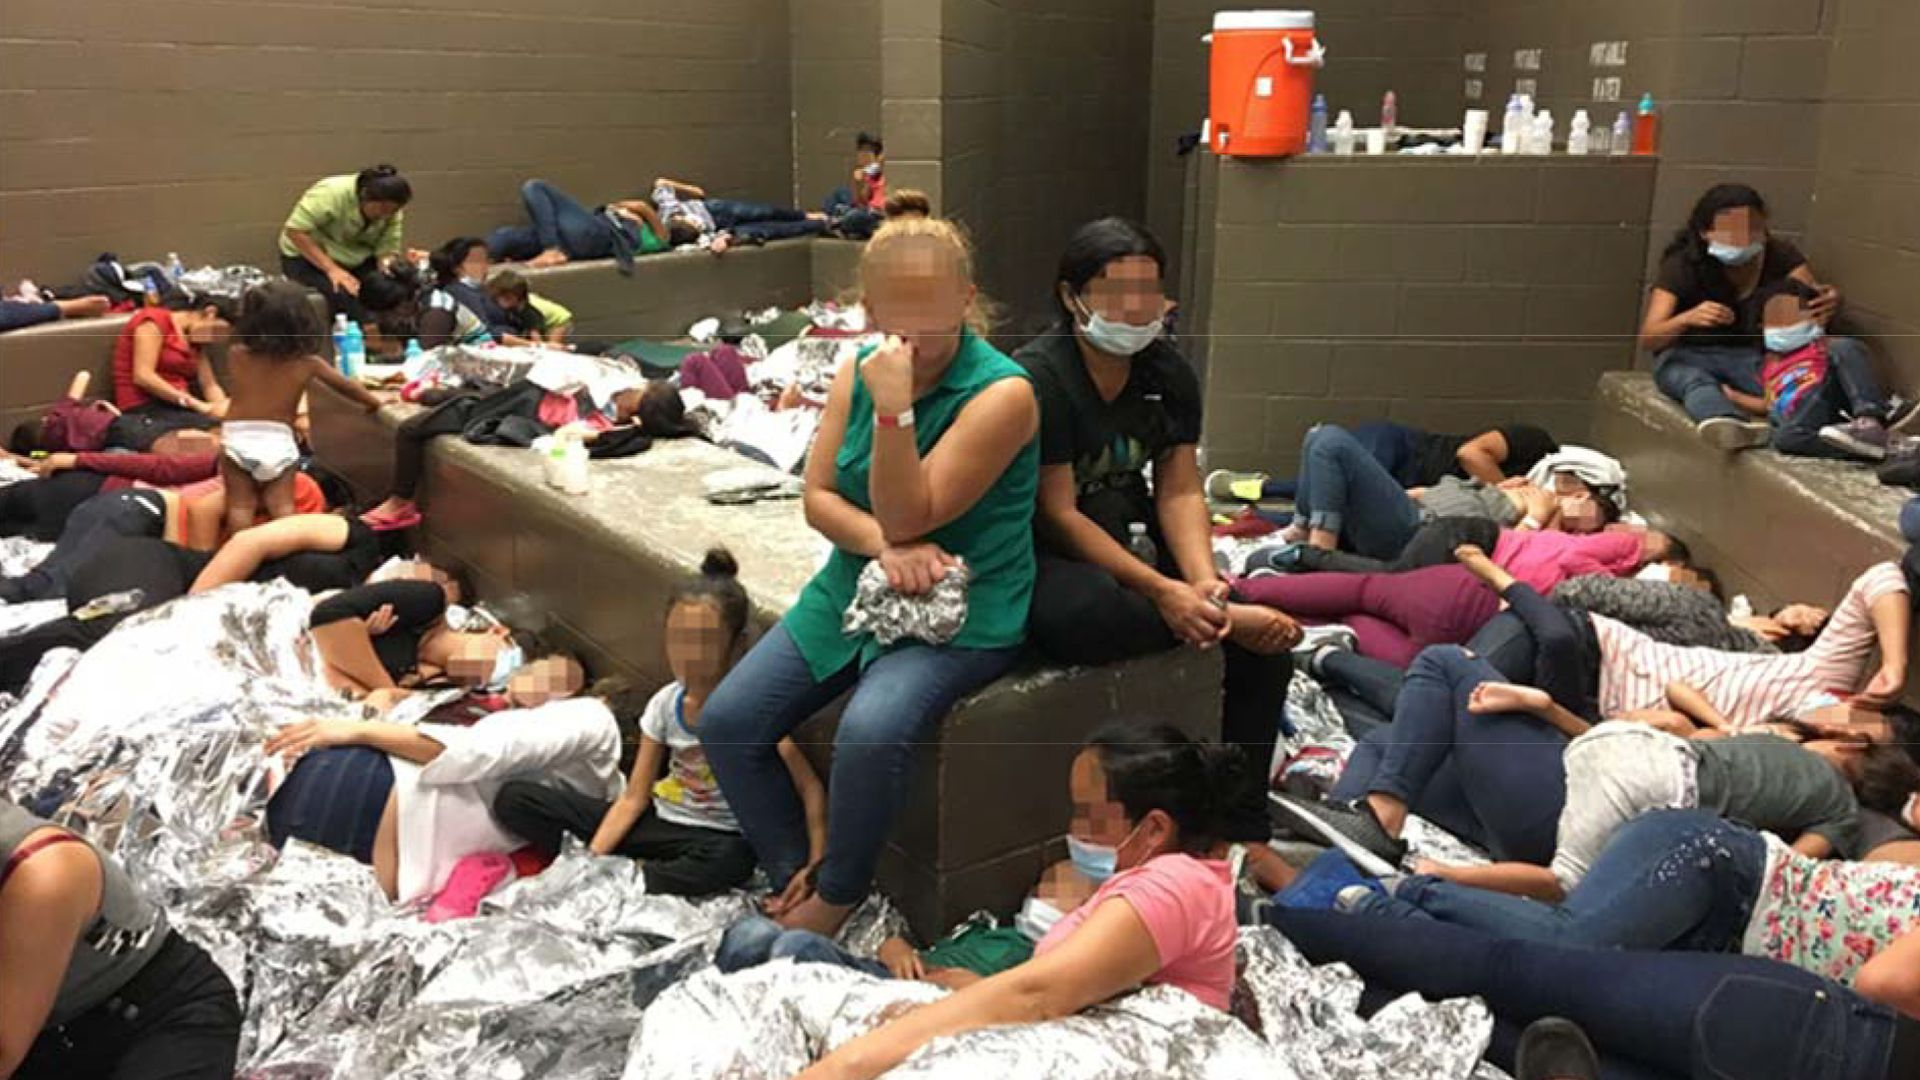 Women and child migrants crammed into a detention cell with aluminum blankets and blurred out faces.